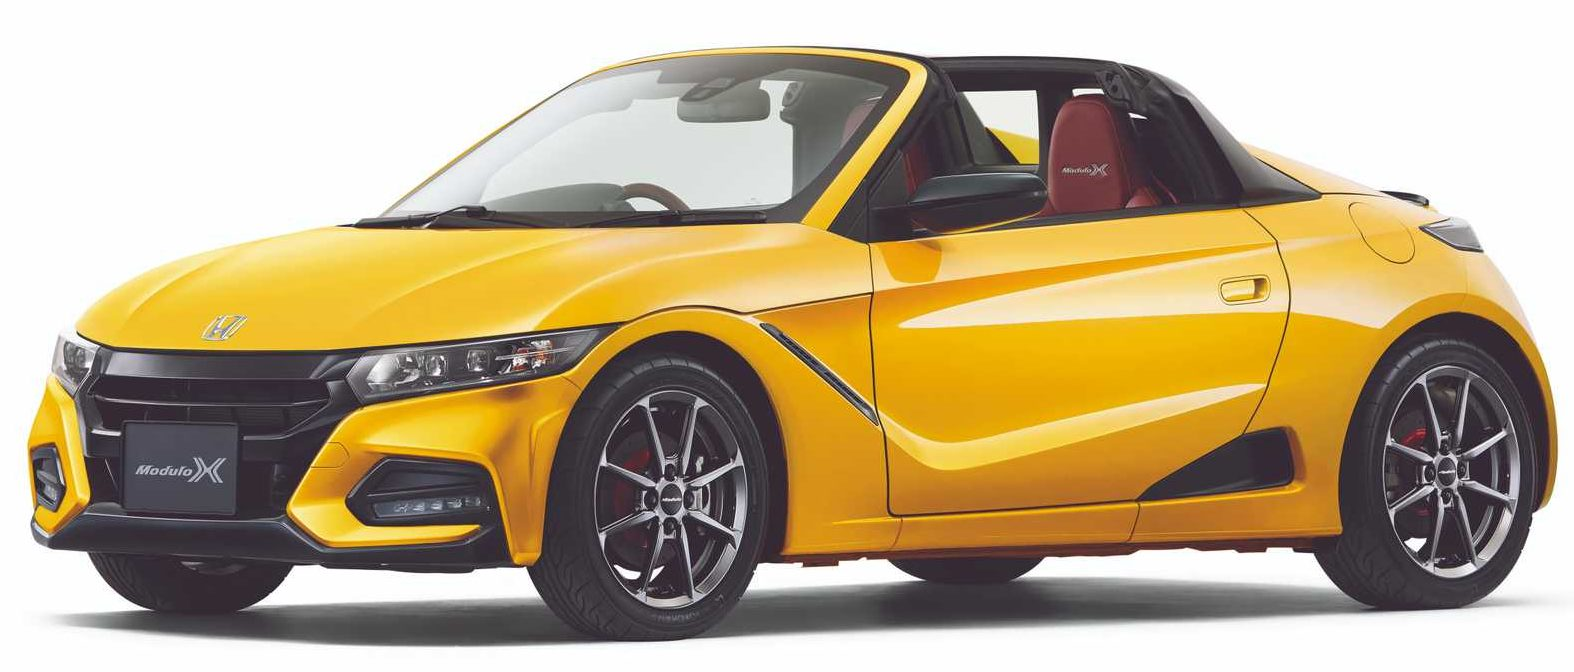 2020 Honda S660 Roadster Officially Unveiled at Tokyo Auto ...